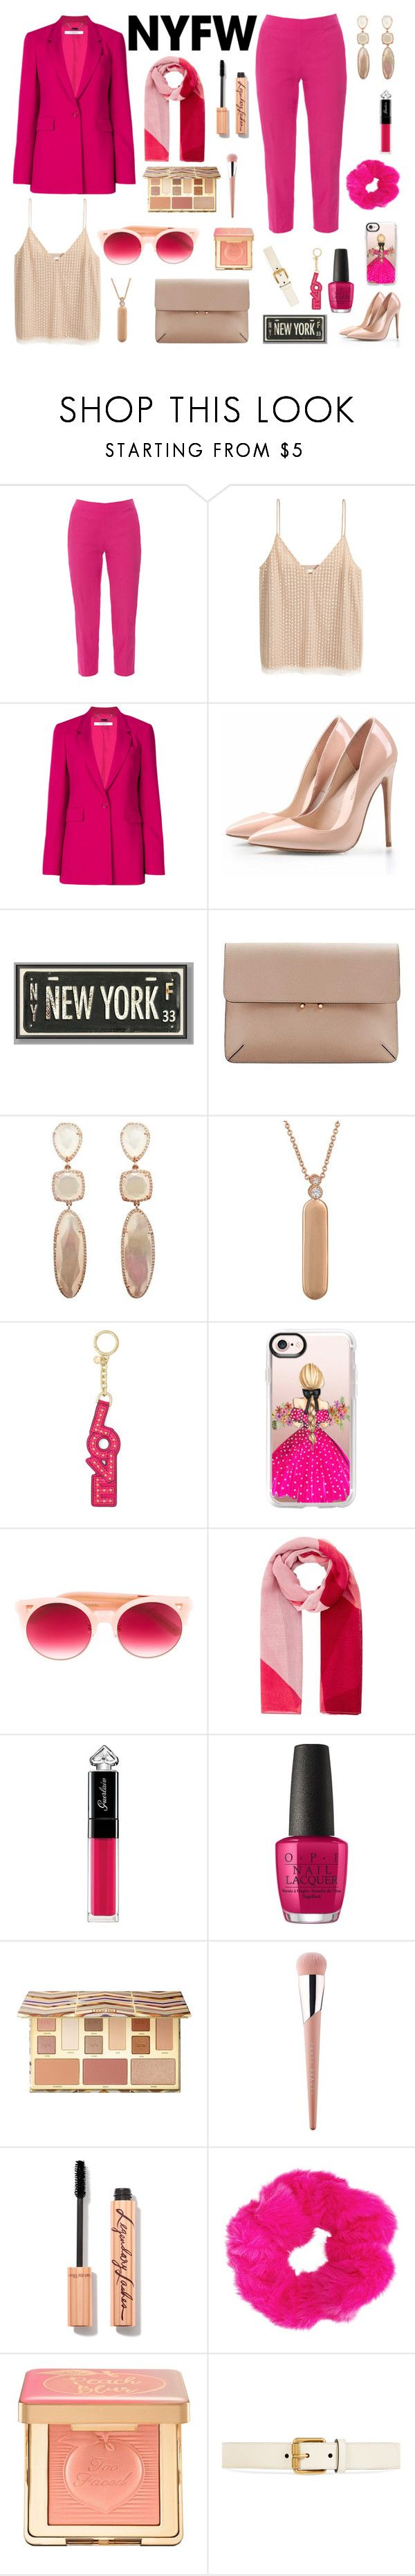 """""""Senza titolo #7096"""" by waikiki24 ❤ liked on Polyvore featuring Piazza Sempione, Givenchy, PBteen, MANGO, My Story, Michael Kors, Casetify, Pared, Accessorize and Guerlain"""